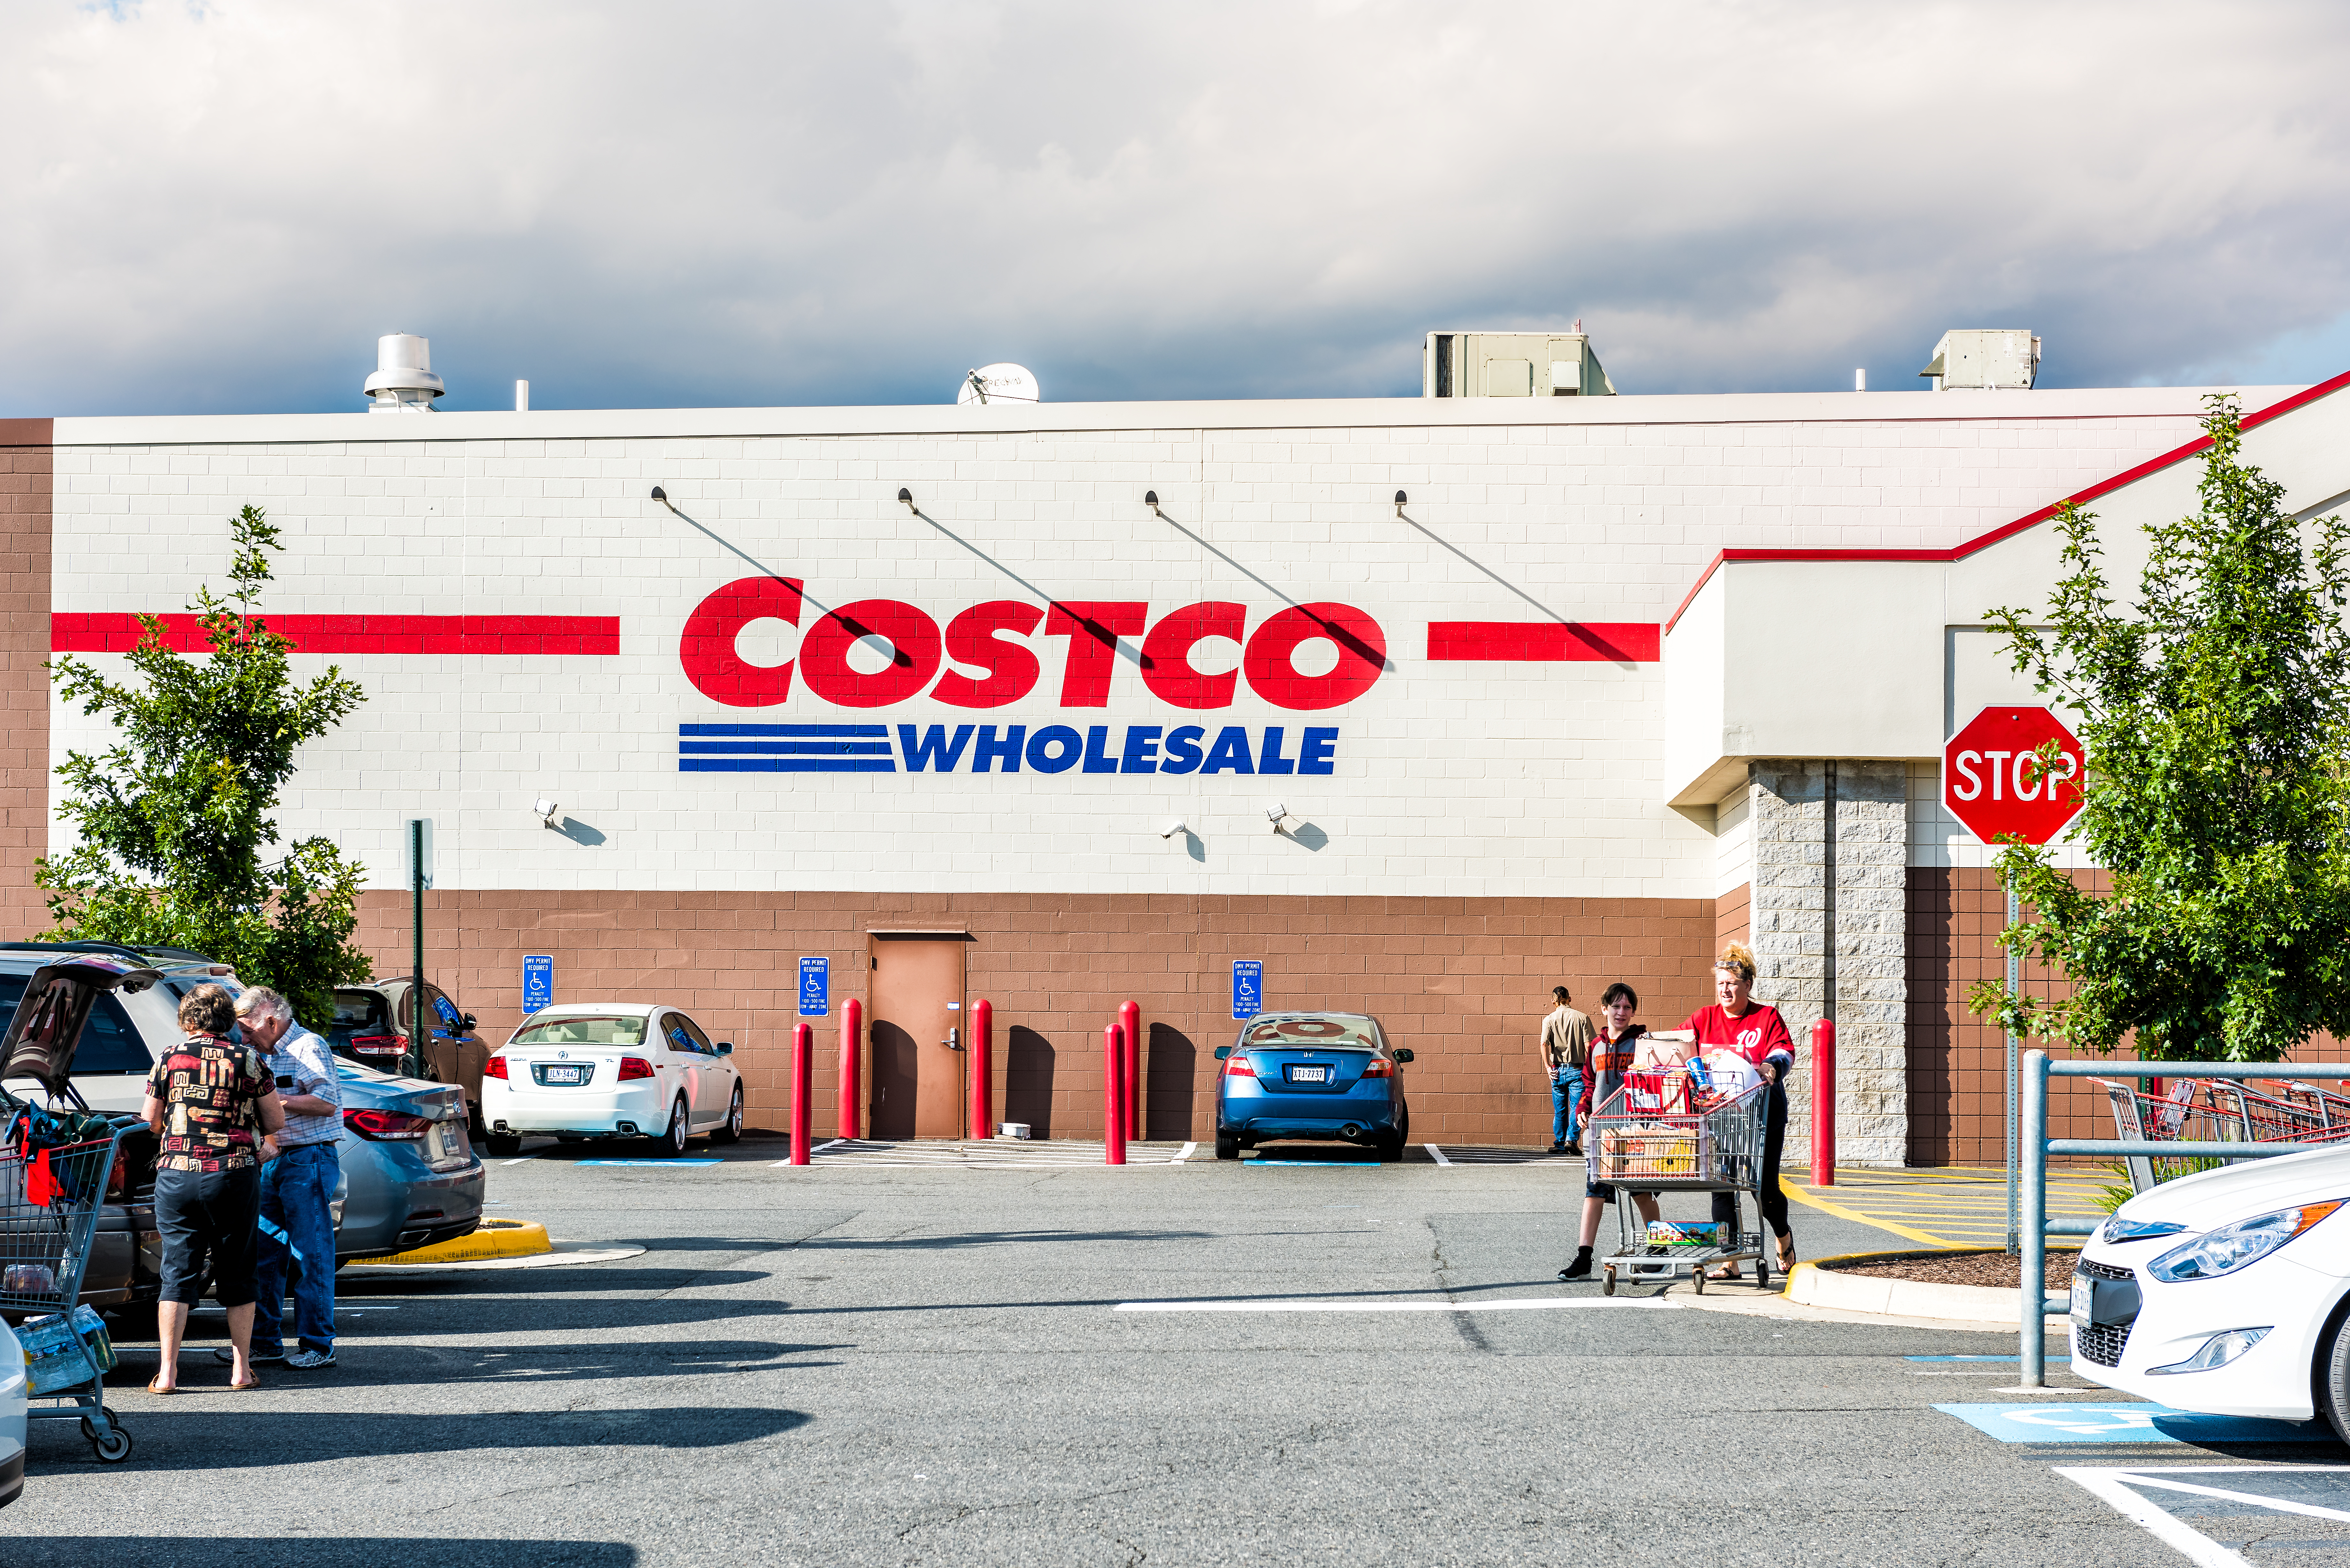 Costco Cheapest Gas Price Comparison | Kitchn